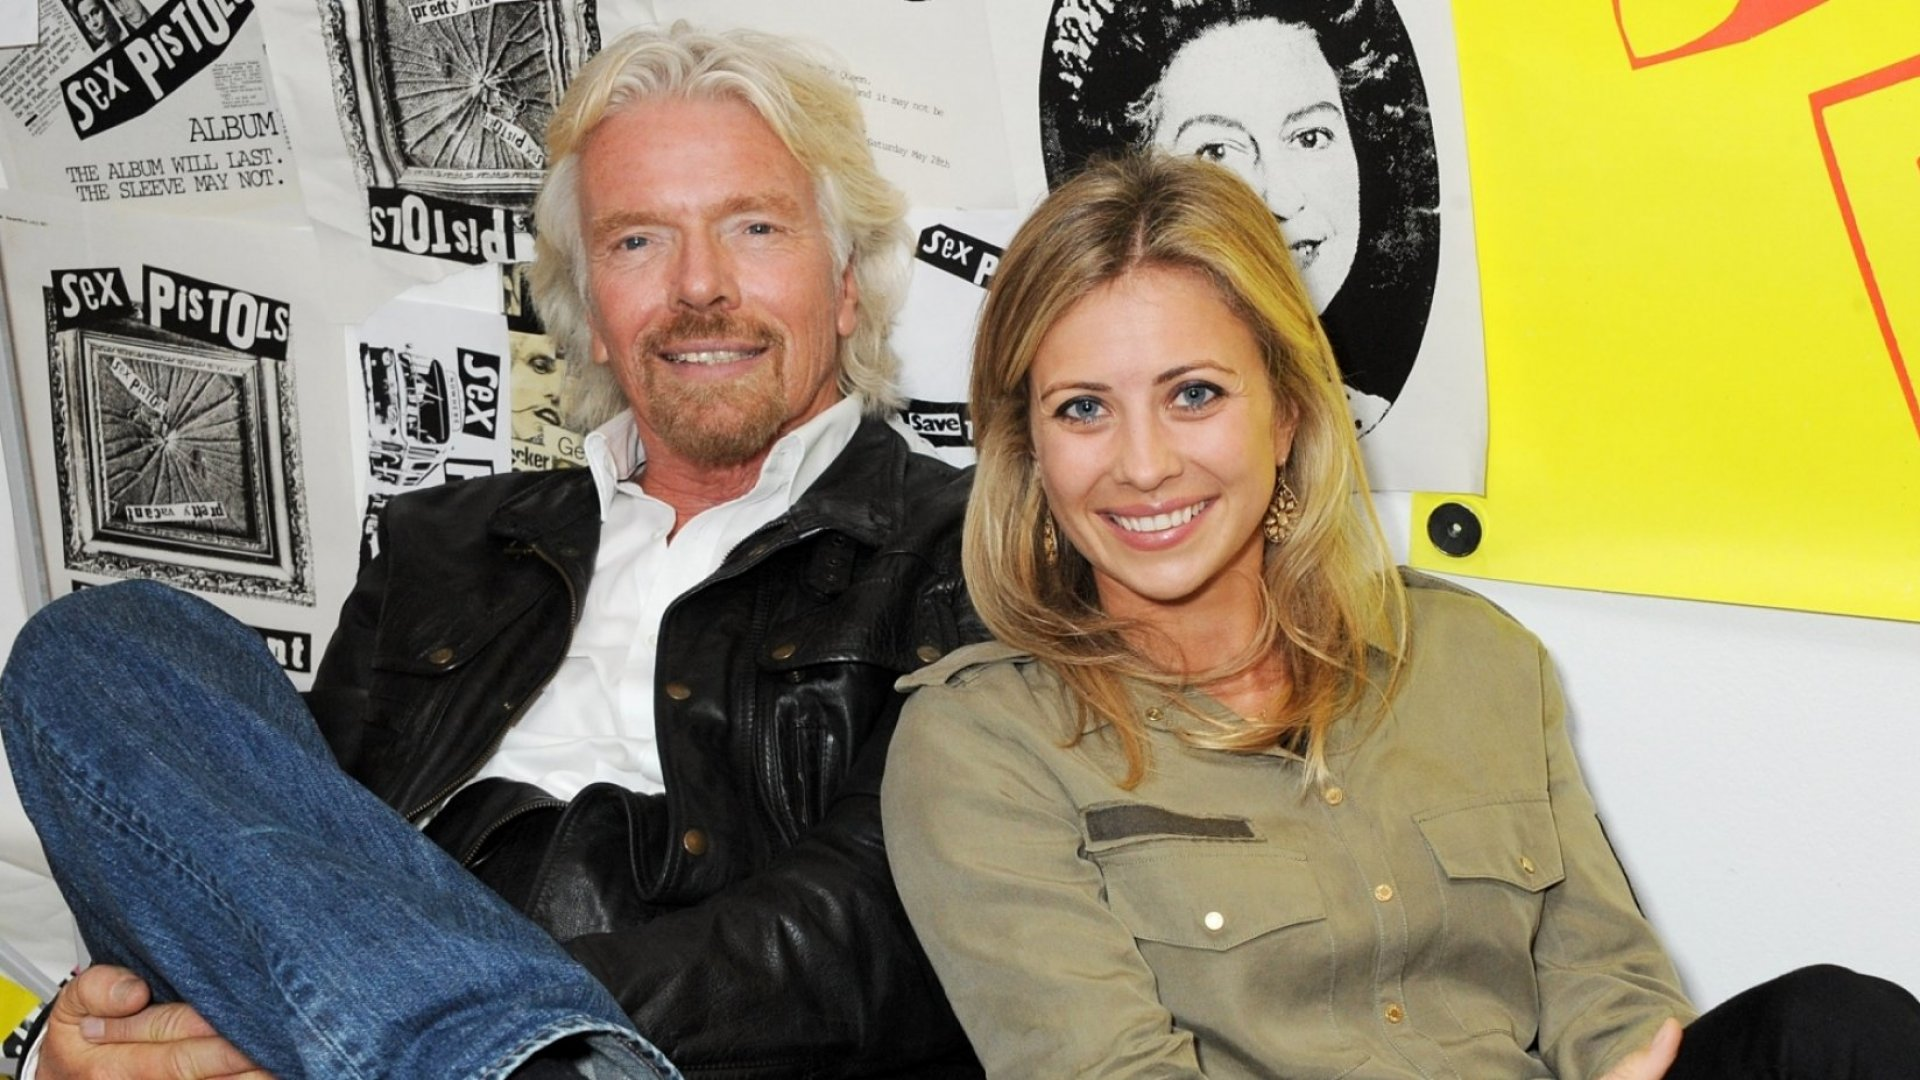 Parenting Tip From Richard Branson: Smoke Pot With Your Kids